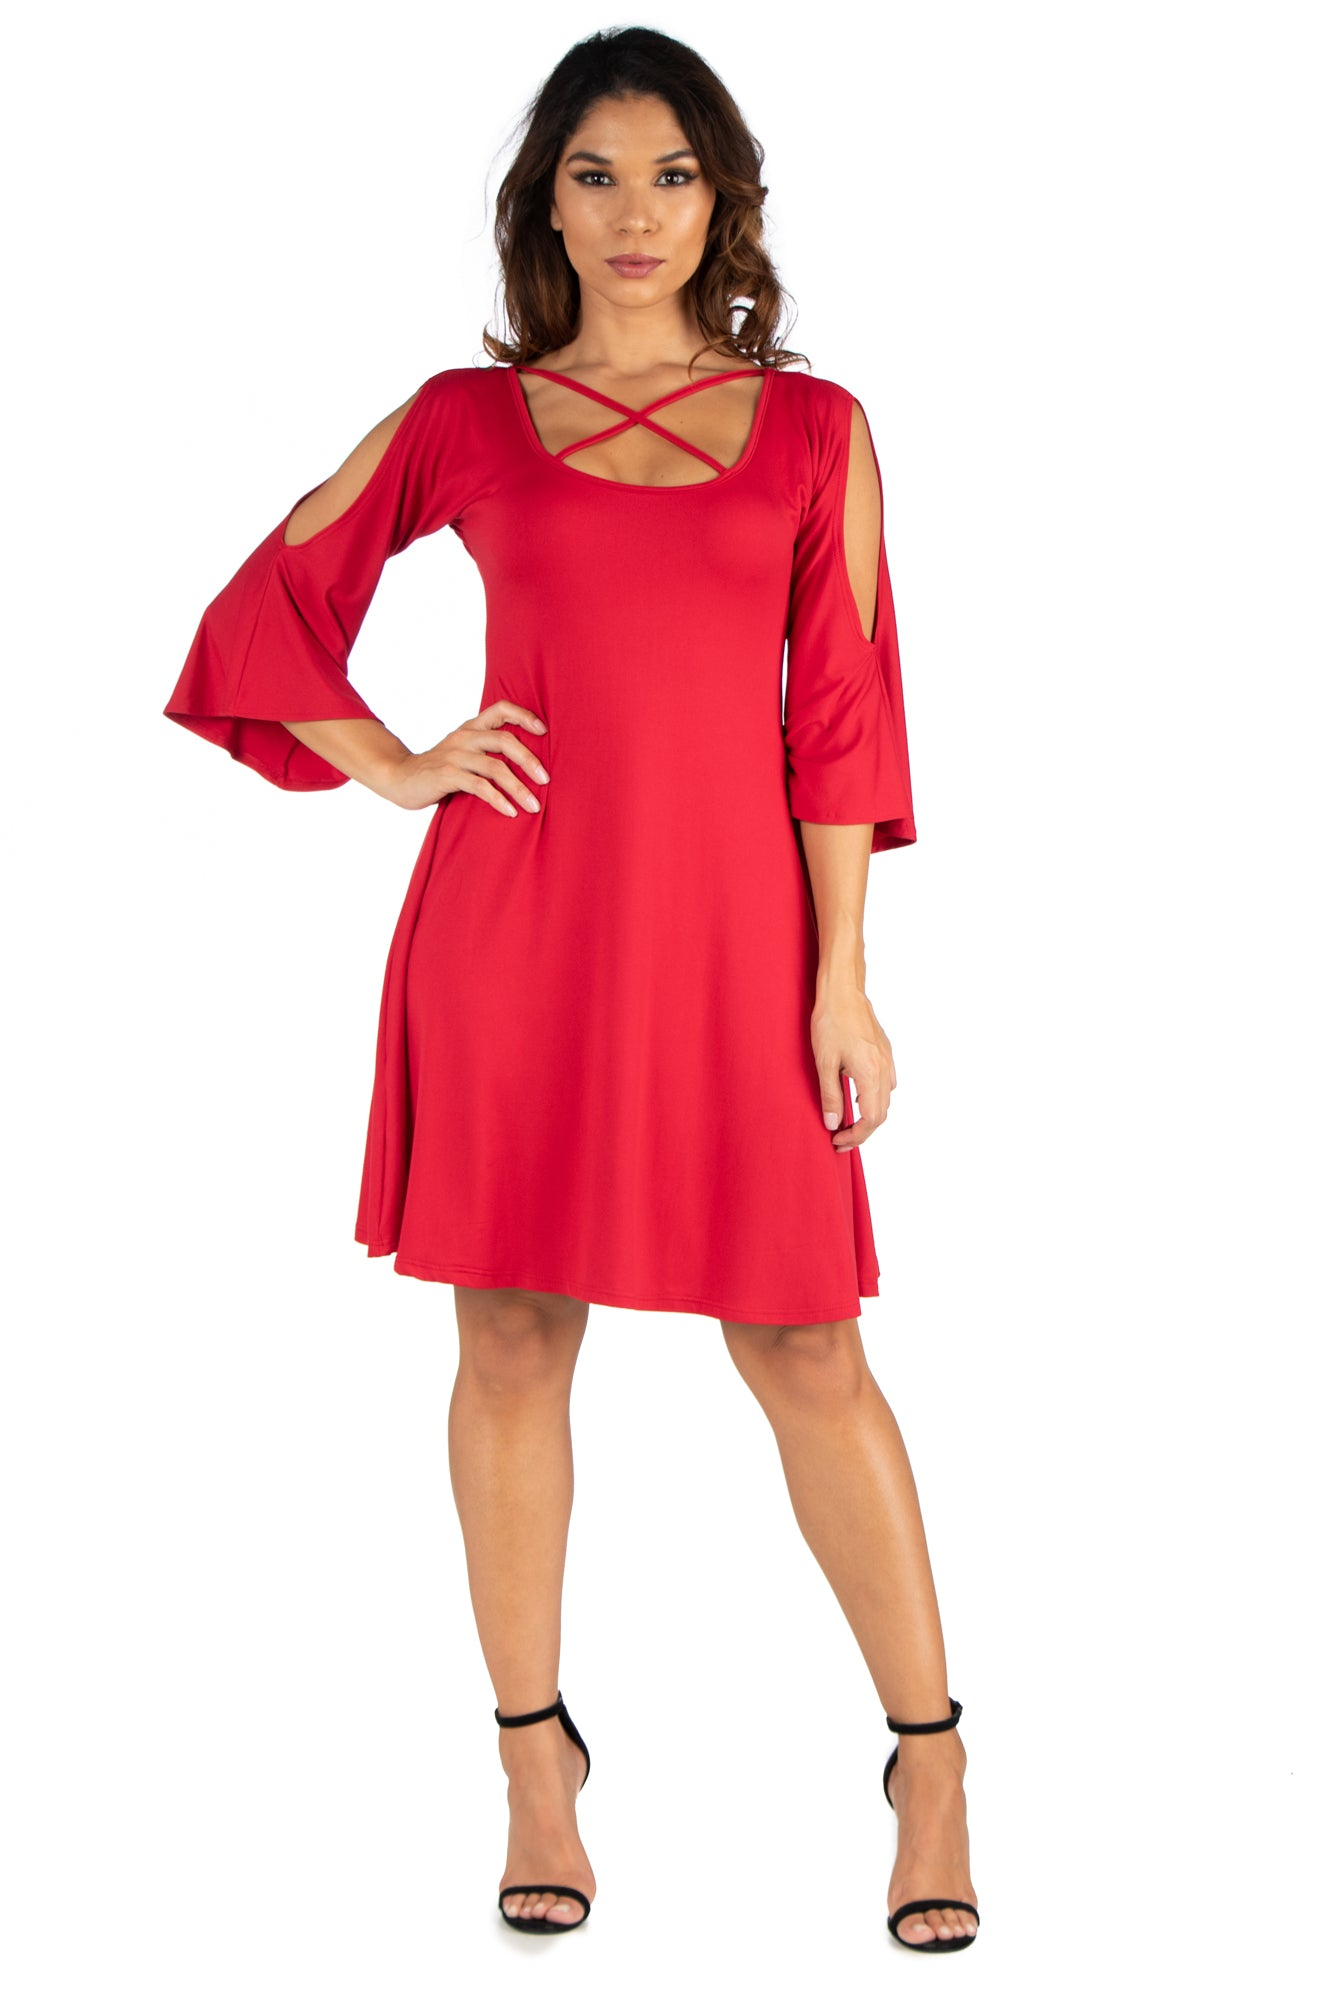 24seven Comfort Apparel Womens Criss Cross Neckline Cold Shoulder Dress-Dresses-24Seven Comfort Apparel-RED-S-24/7 Comfort Apparel